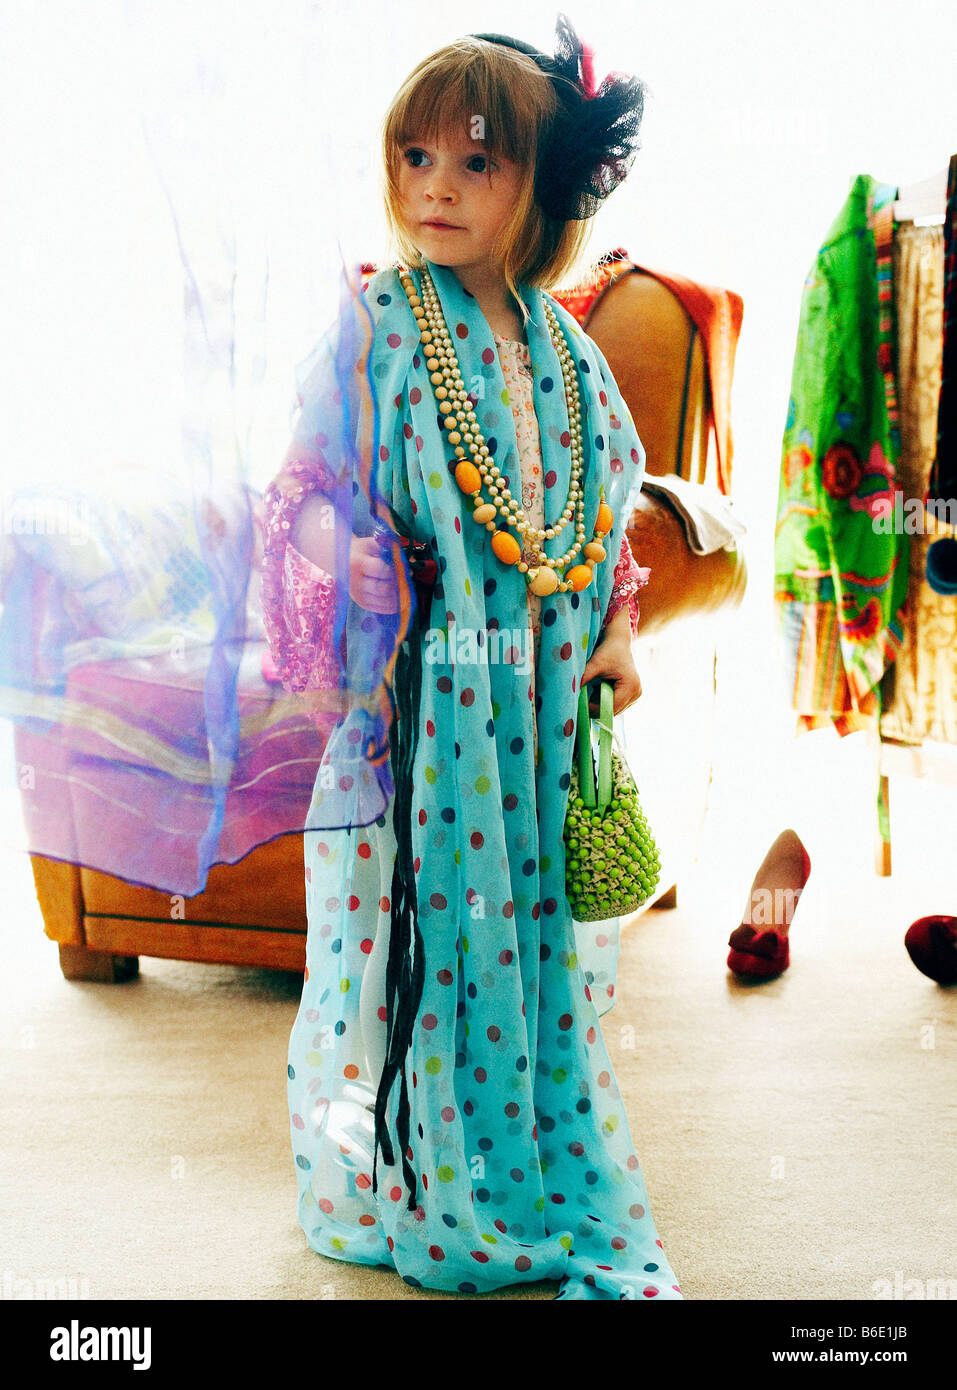 Dressing up. Four year old girl playing dressing up games. - Stock Image